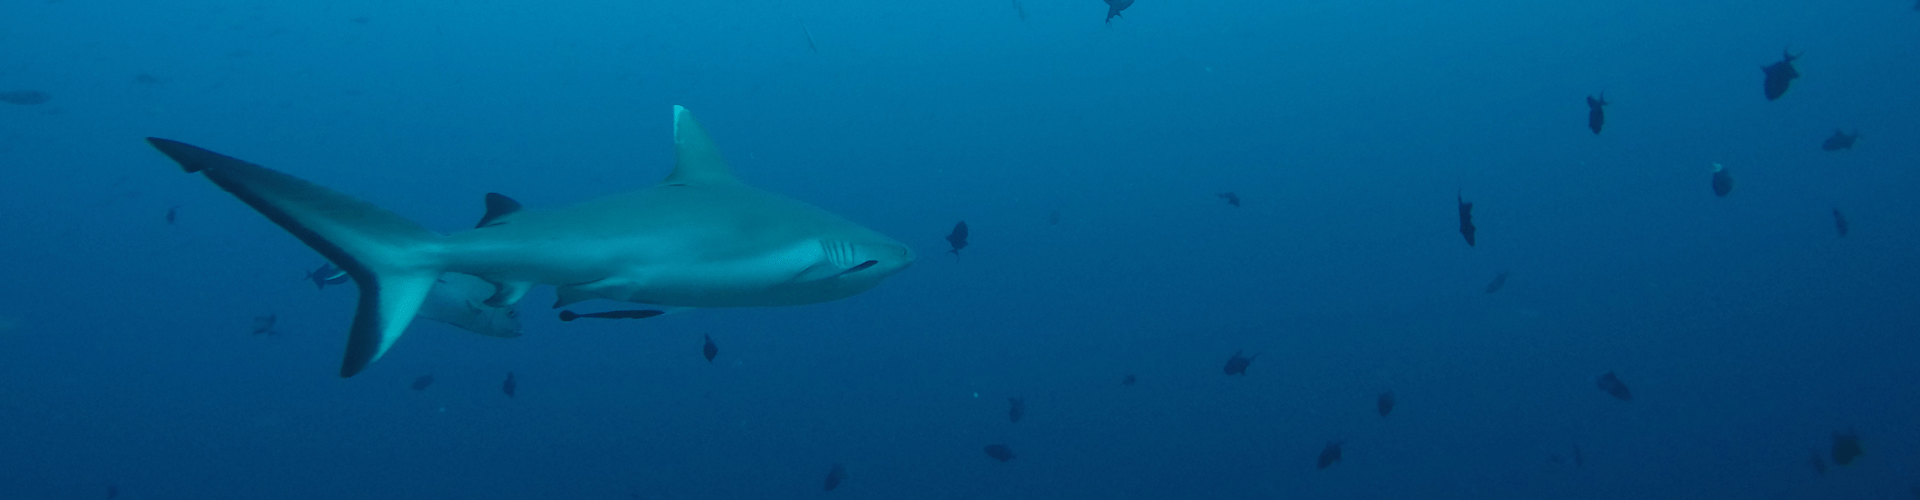 Permalink to: Diving the Maldives